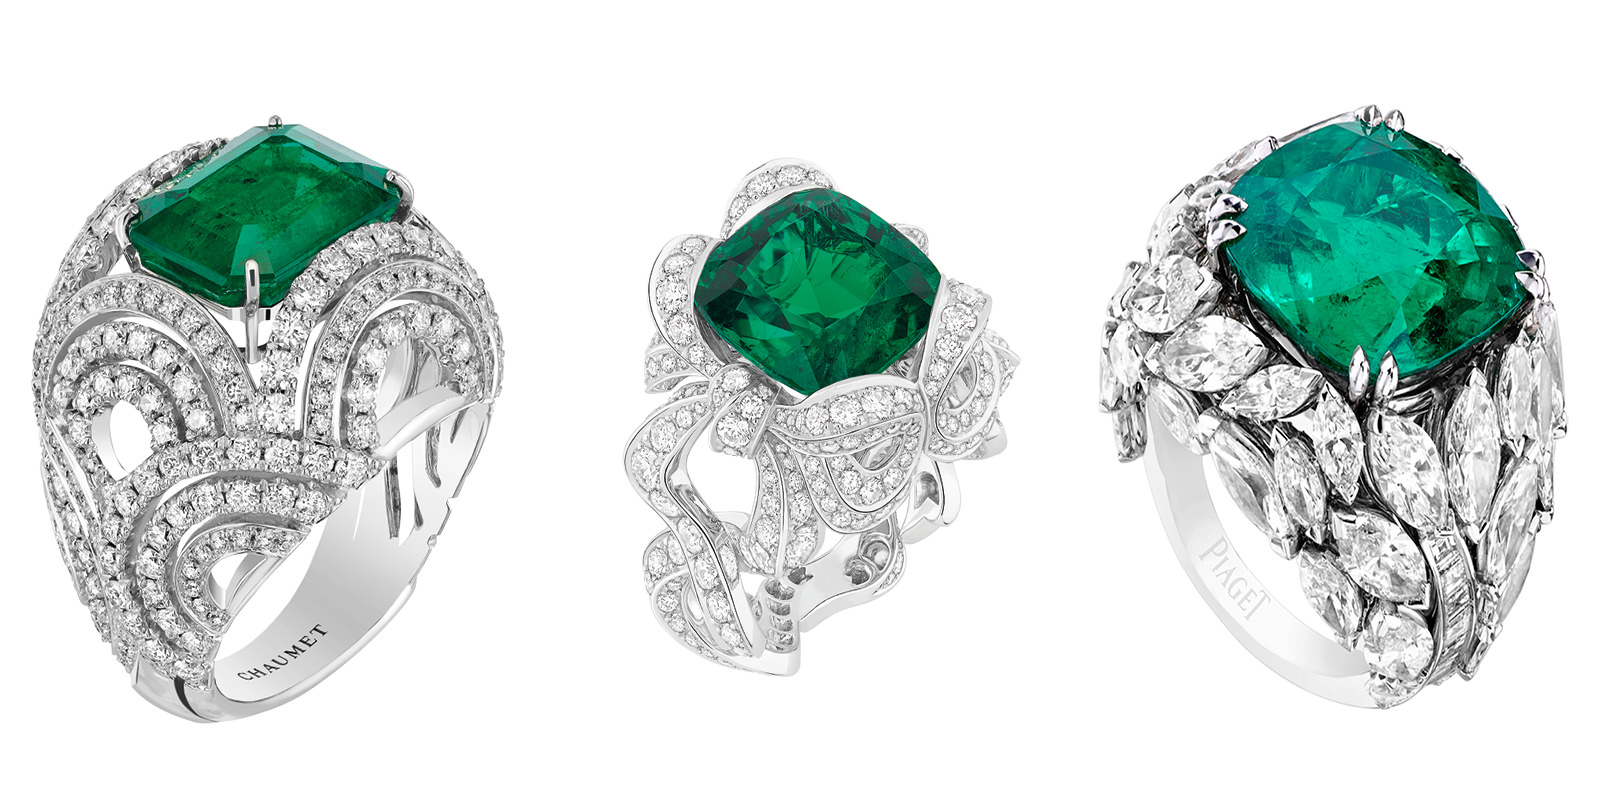 """From left to right:  """"Lumières d'eau"""" ring, CHAUMET. """"Angélique"""" ring, DIOR JOAILLERIE. """"Limelight Mediterranean Garden"""" ring, PIAGET.   Selection by Rebecca Bleynie"""